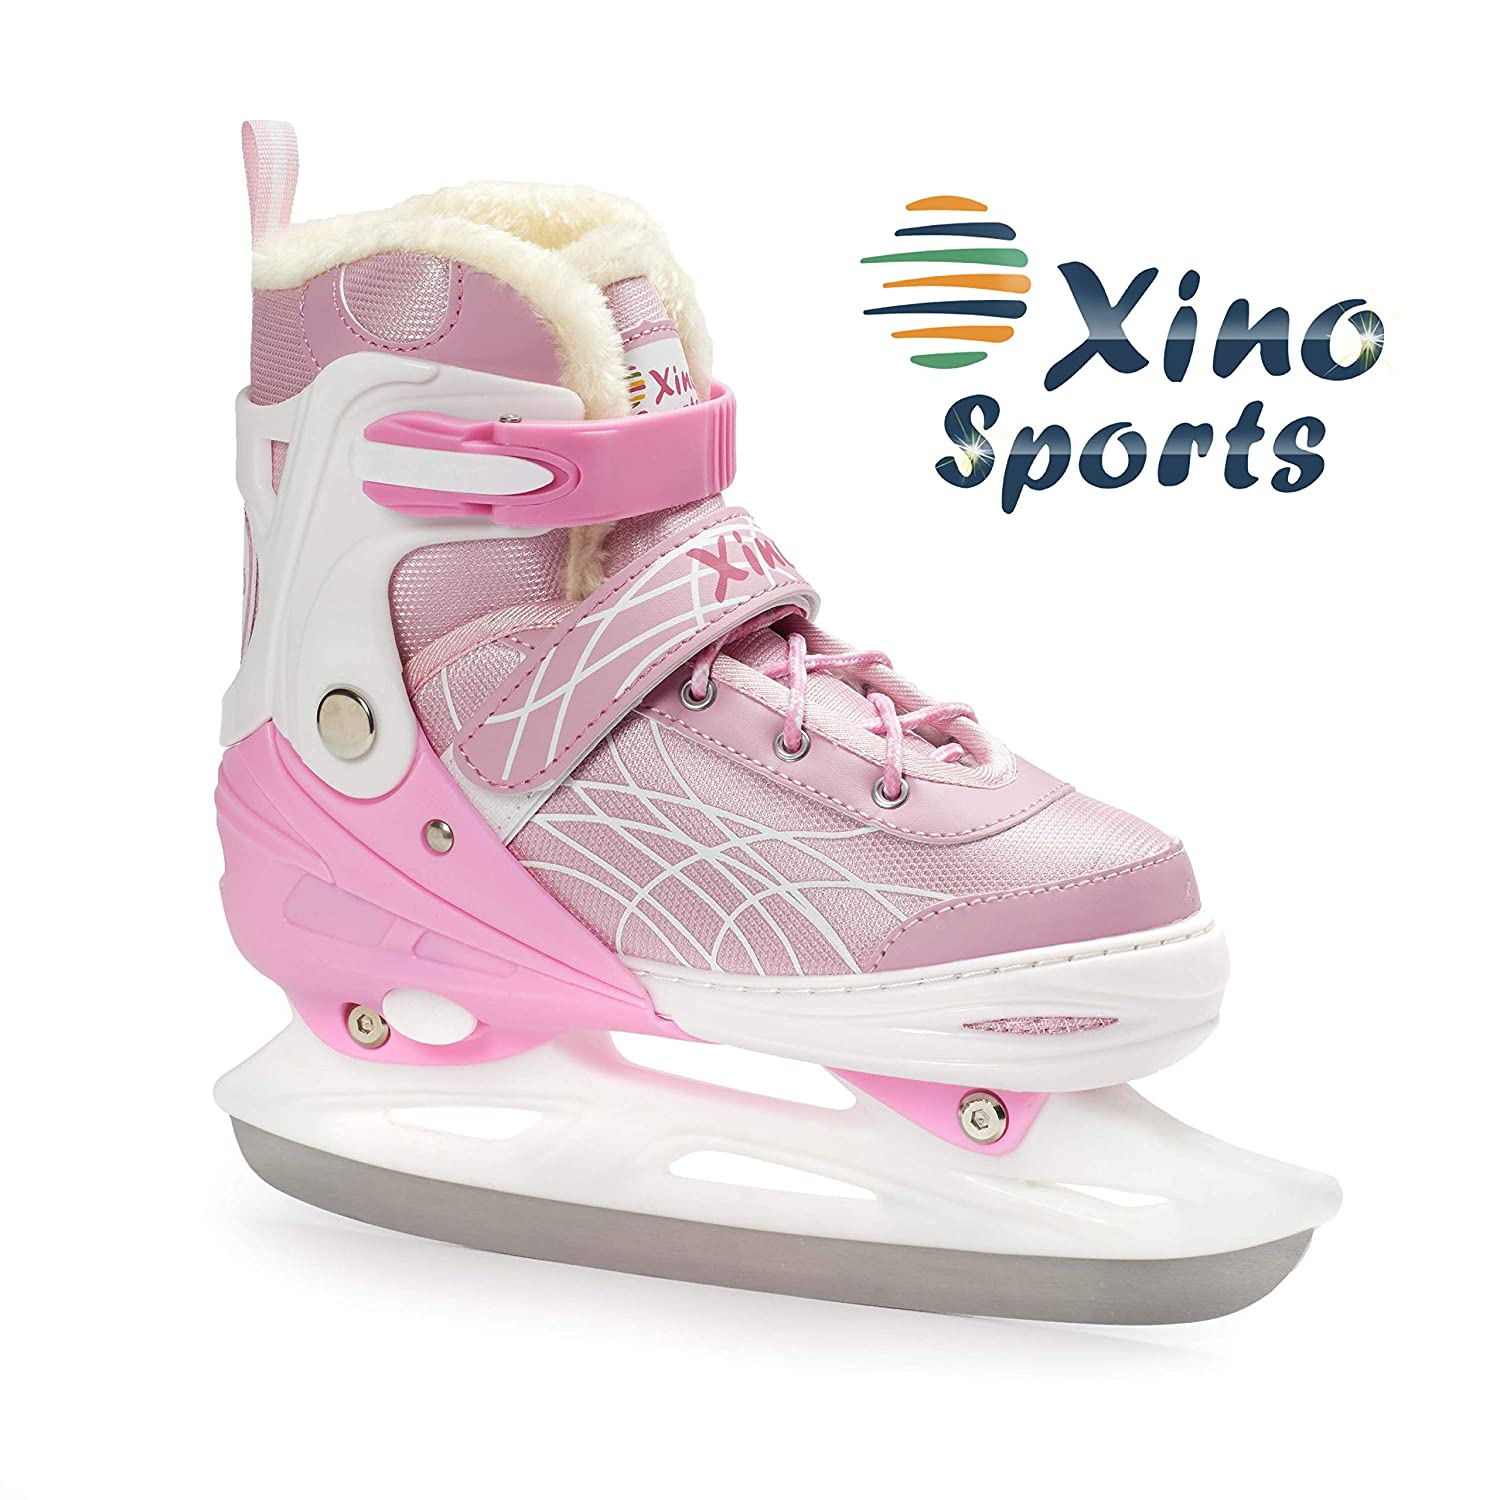 XinoSports Deluxe Adjustable Ice Skates - for Boys and Girls, Two Awesome Colors - Blue and Pink